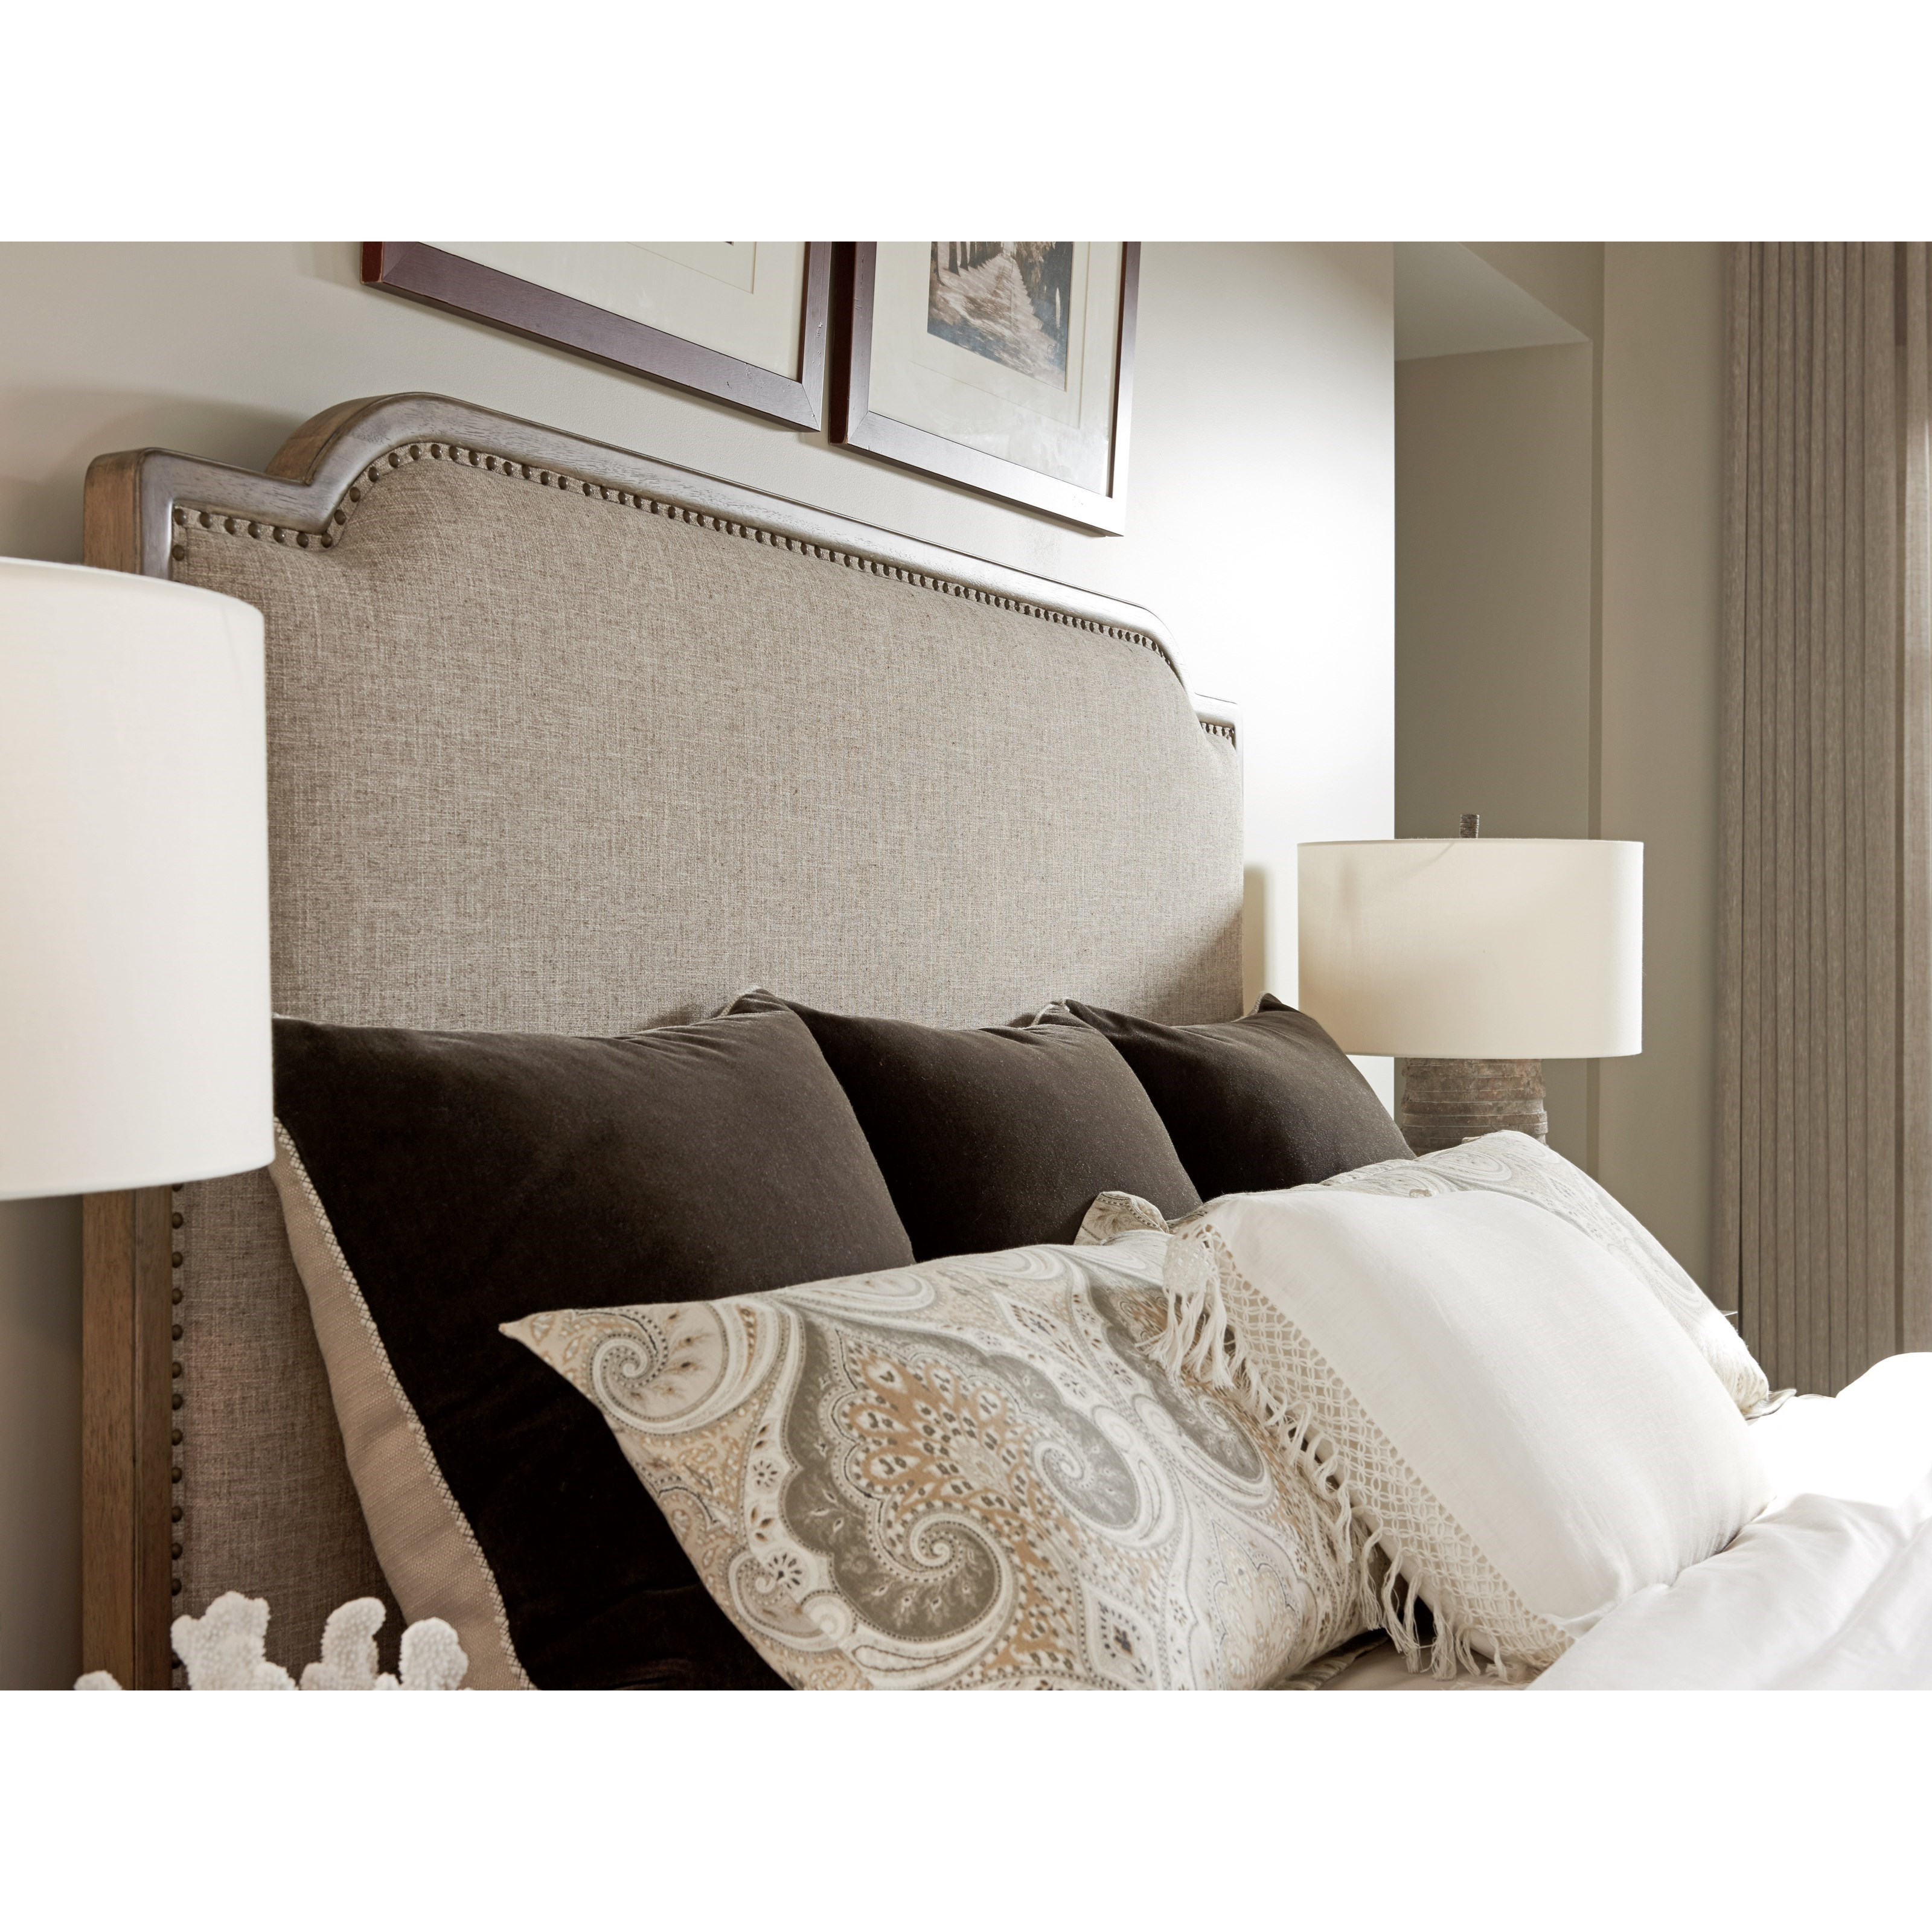 Cypress Point Stone Harbour Upholstered Headboard 5/0 Quee by Tommy Bahama Home at Baer's Furniture